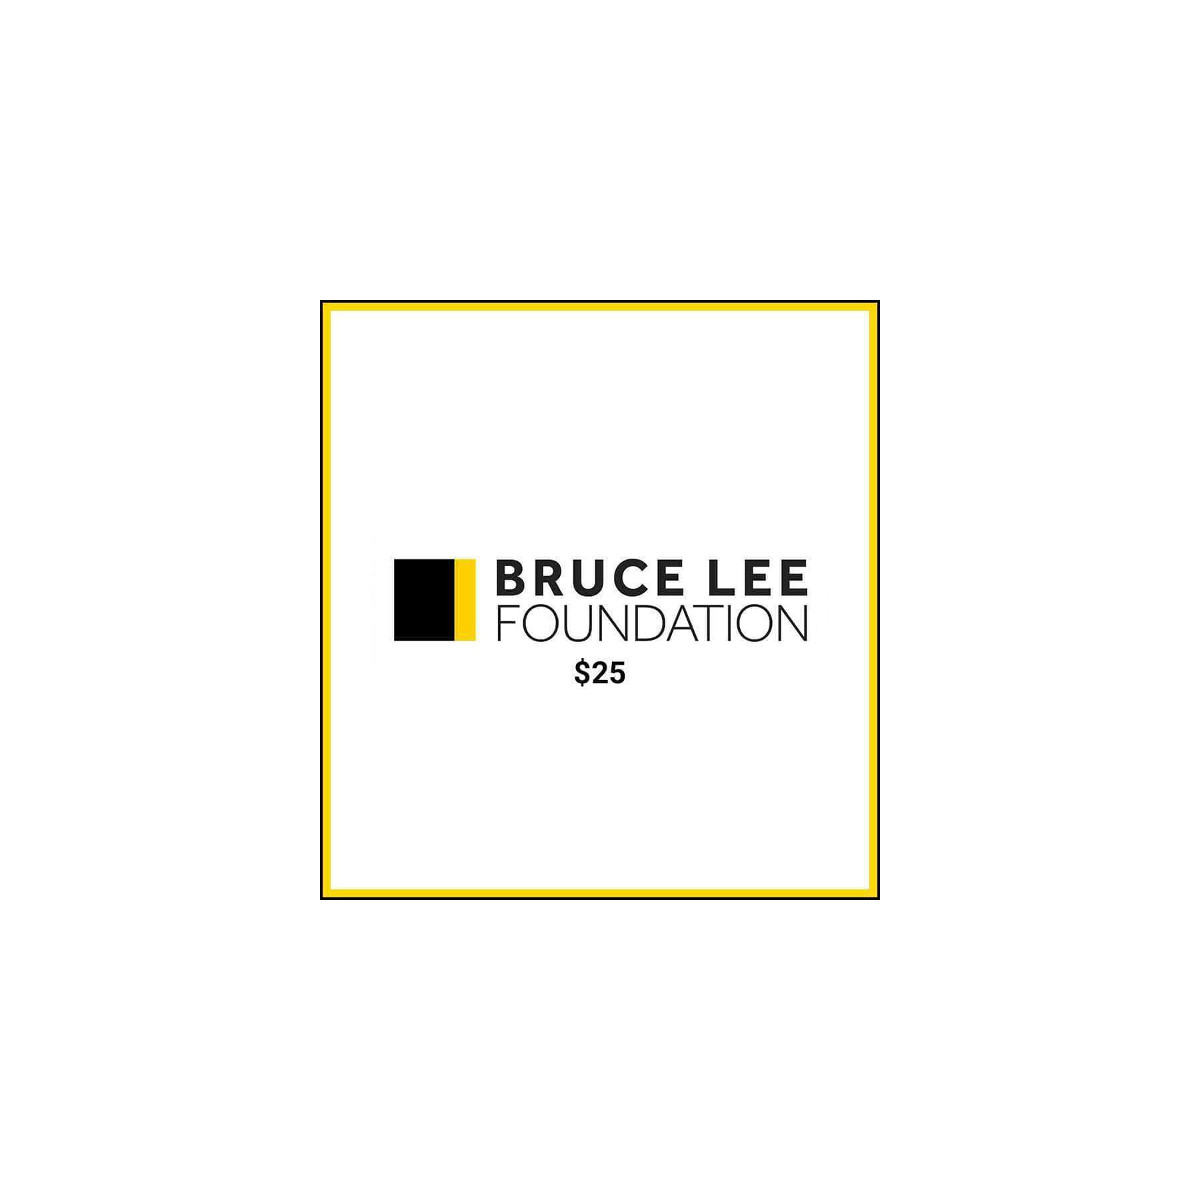 Bruce Lee Foundation $25 Donation